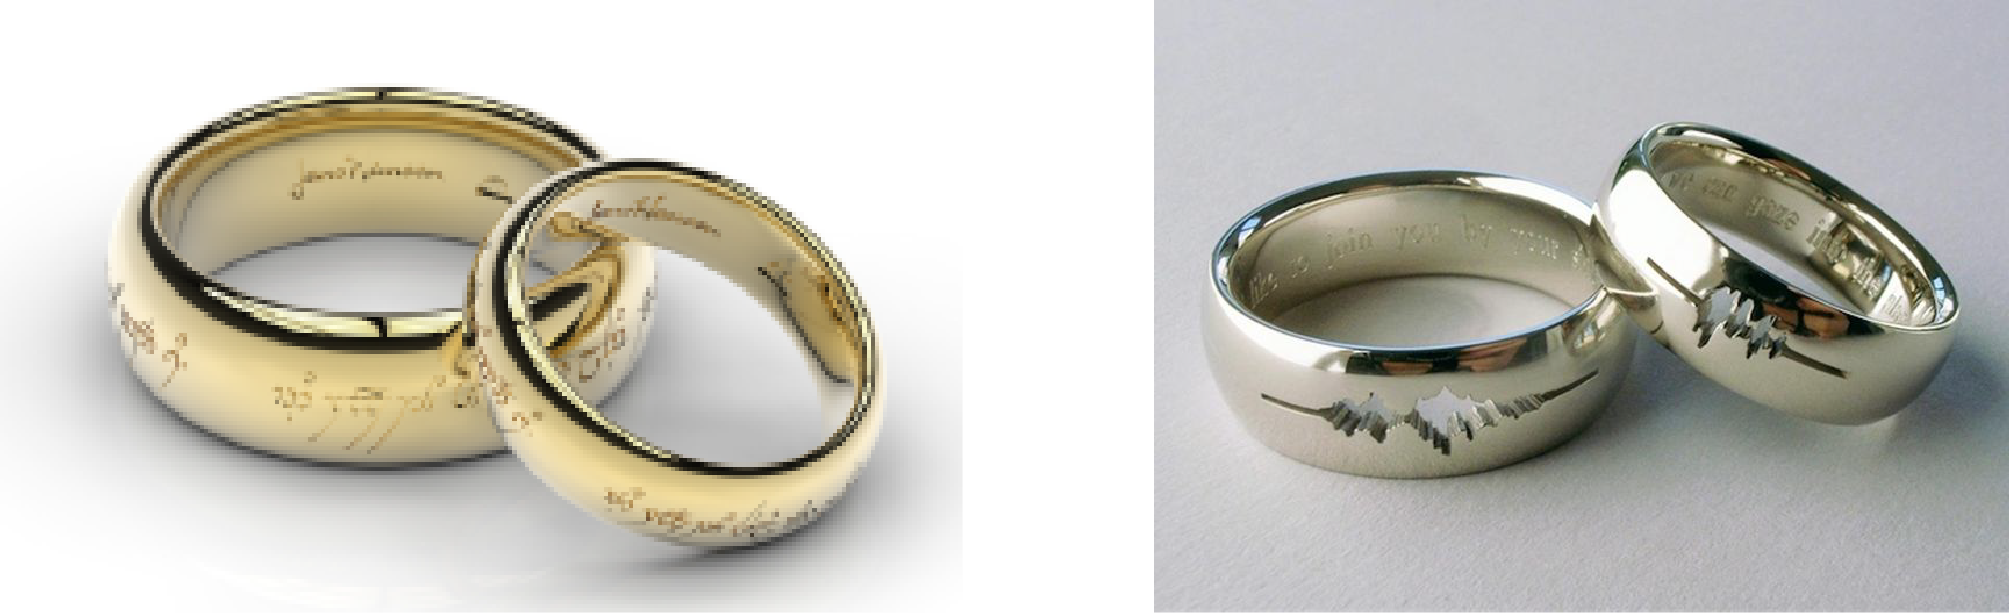 inspired band nerd unique and engagement forever geeky dovah wedding in skyrim rings now